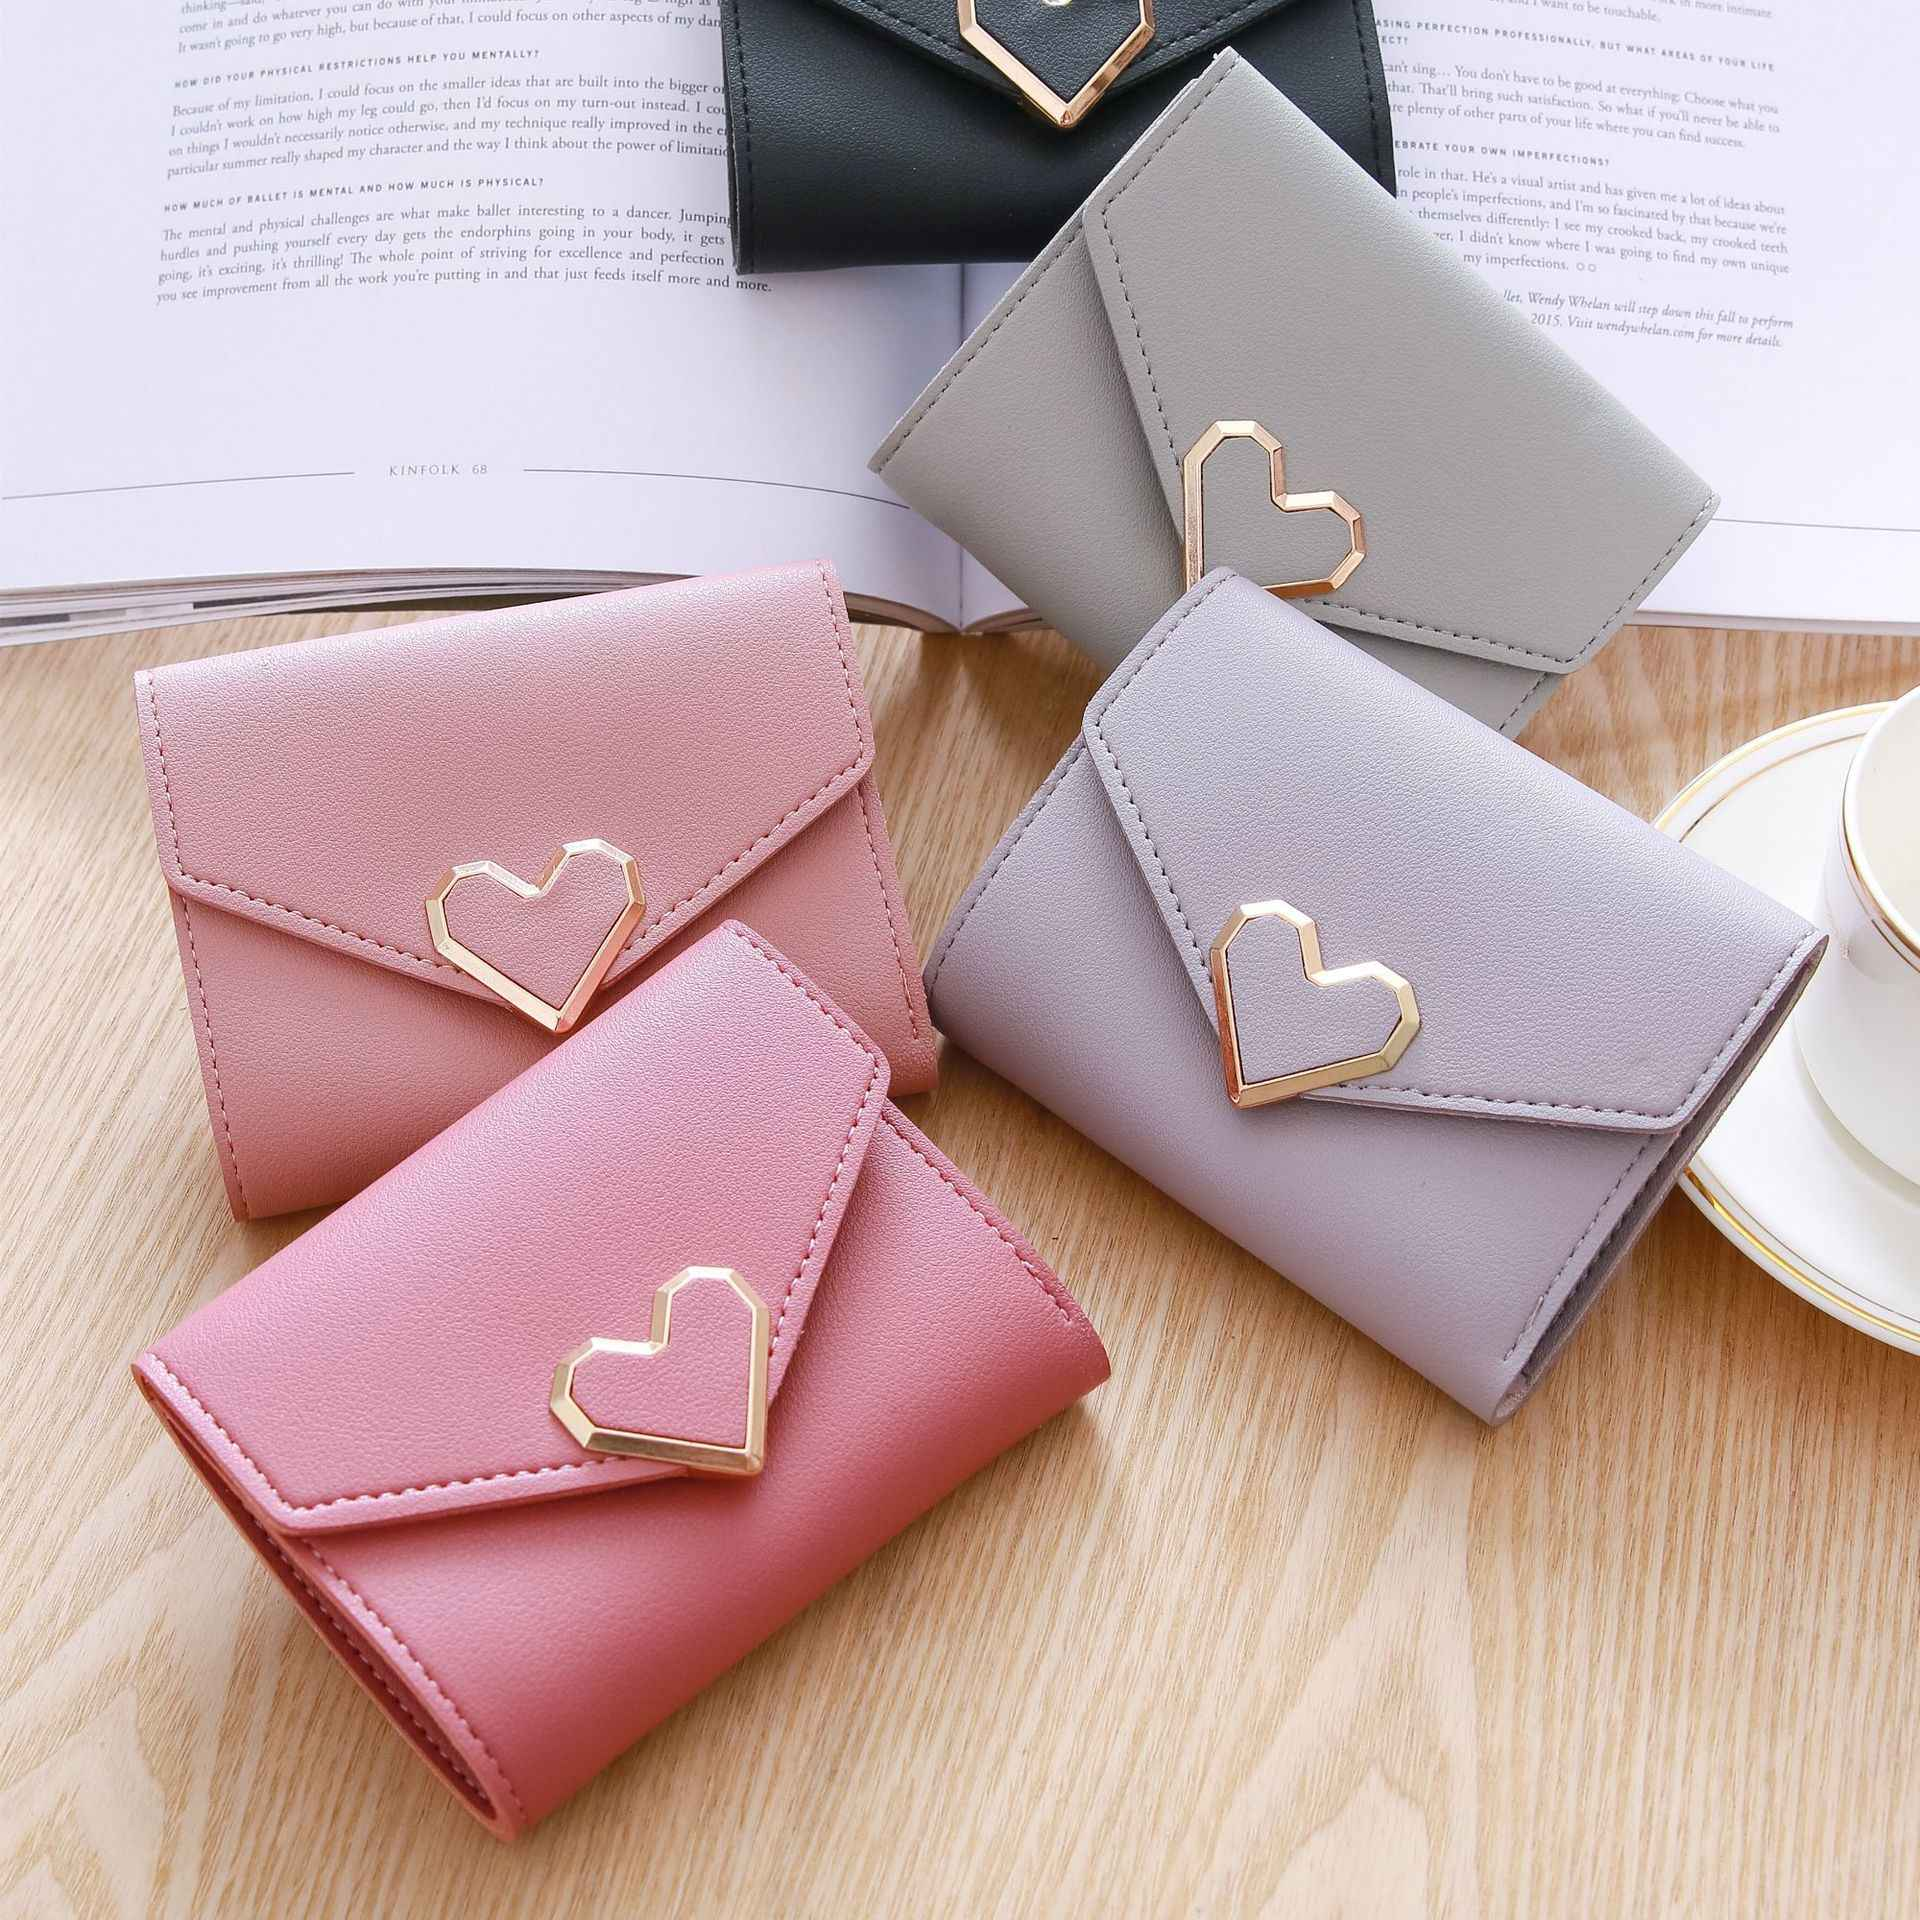 0c020a33fdd8 NEW Leather Women Wallet Hasp Small Coin Pocket Purse Women Wallets ...